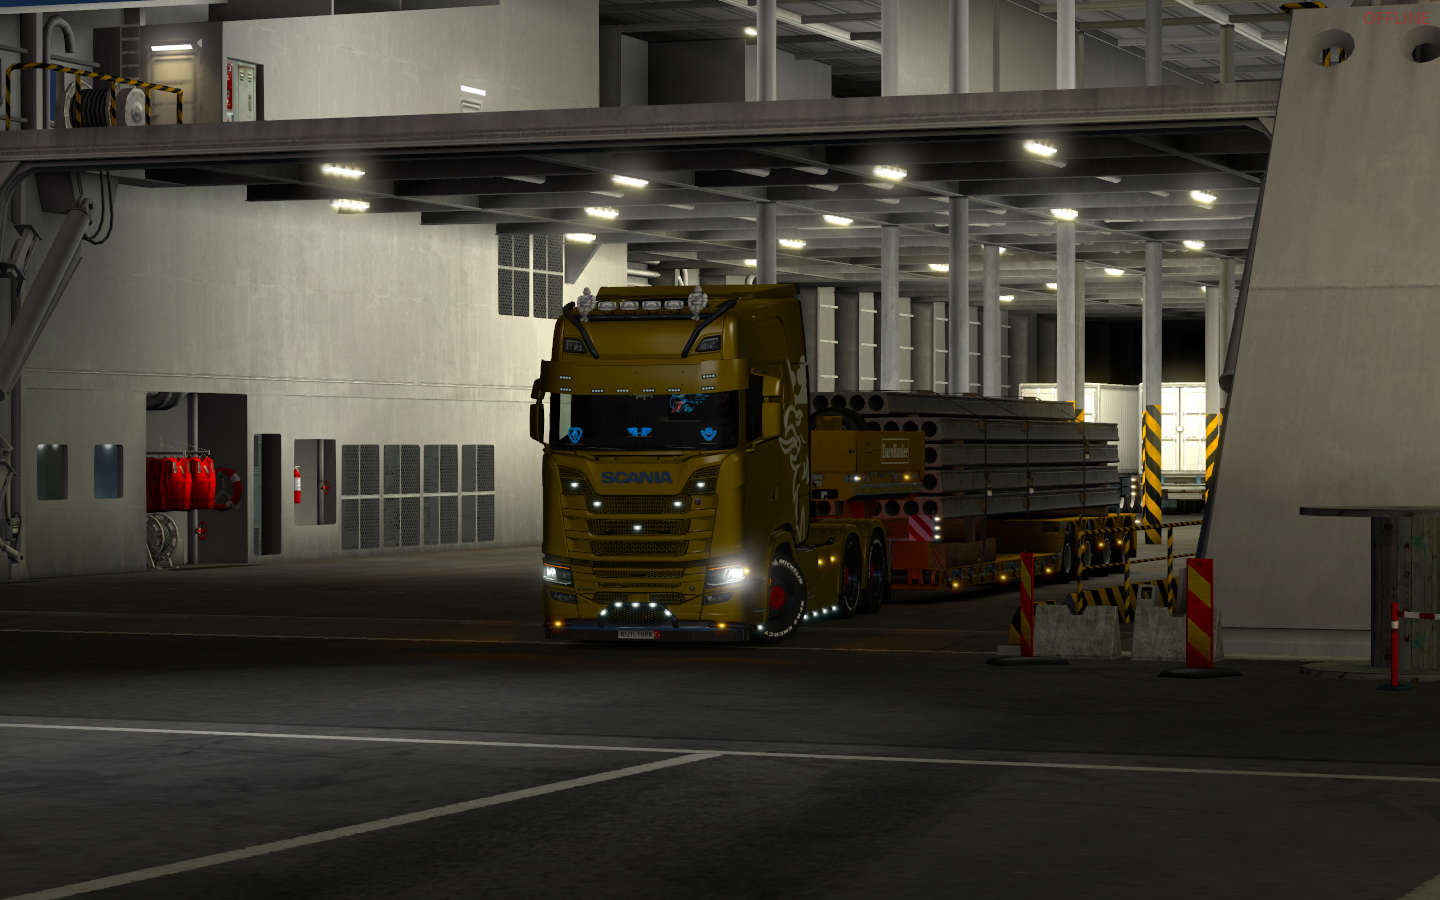 ets2_20190306_215854_00.png